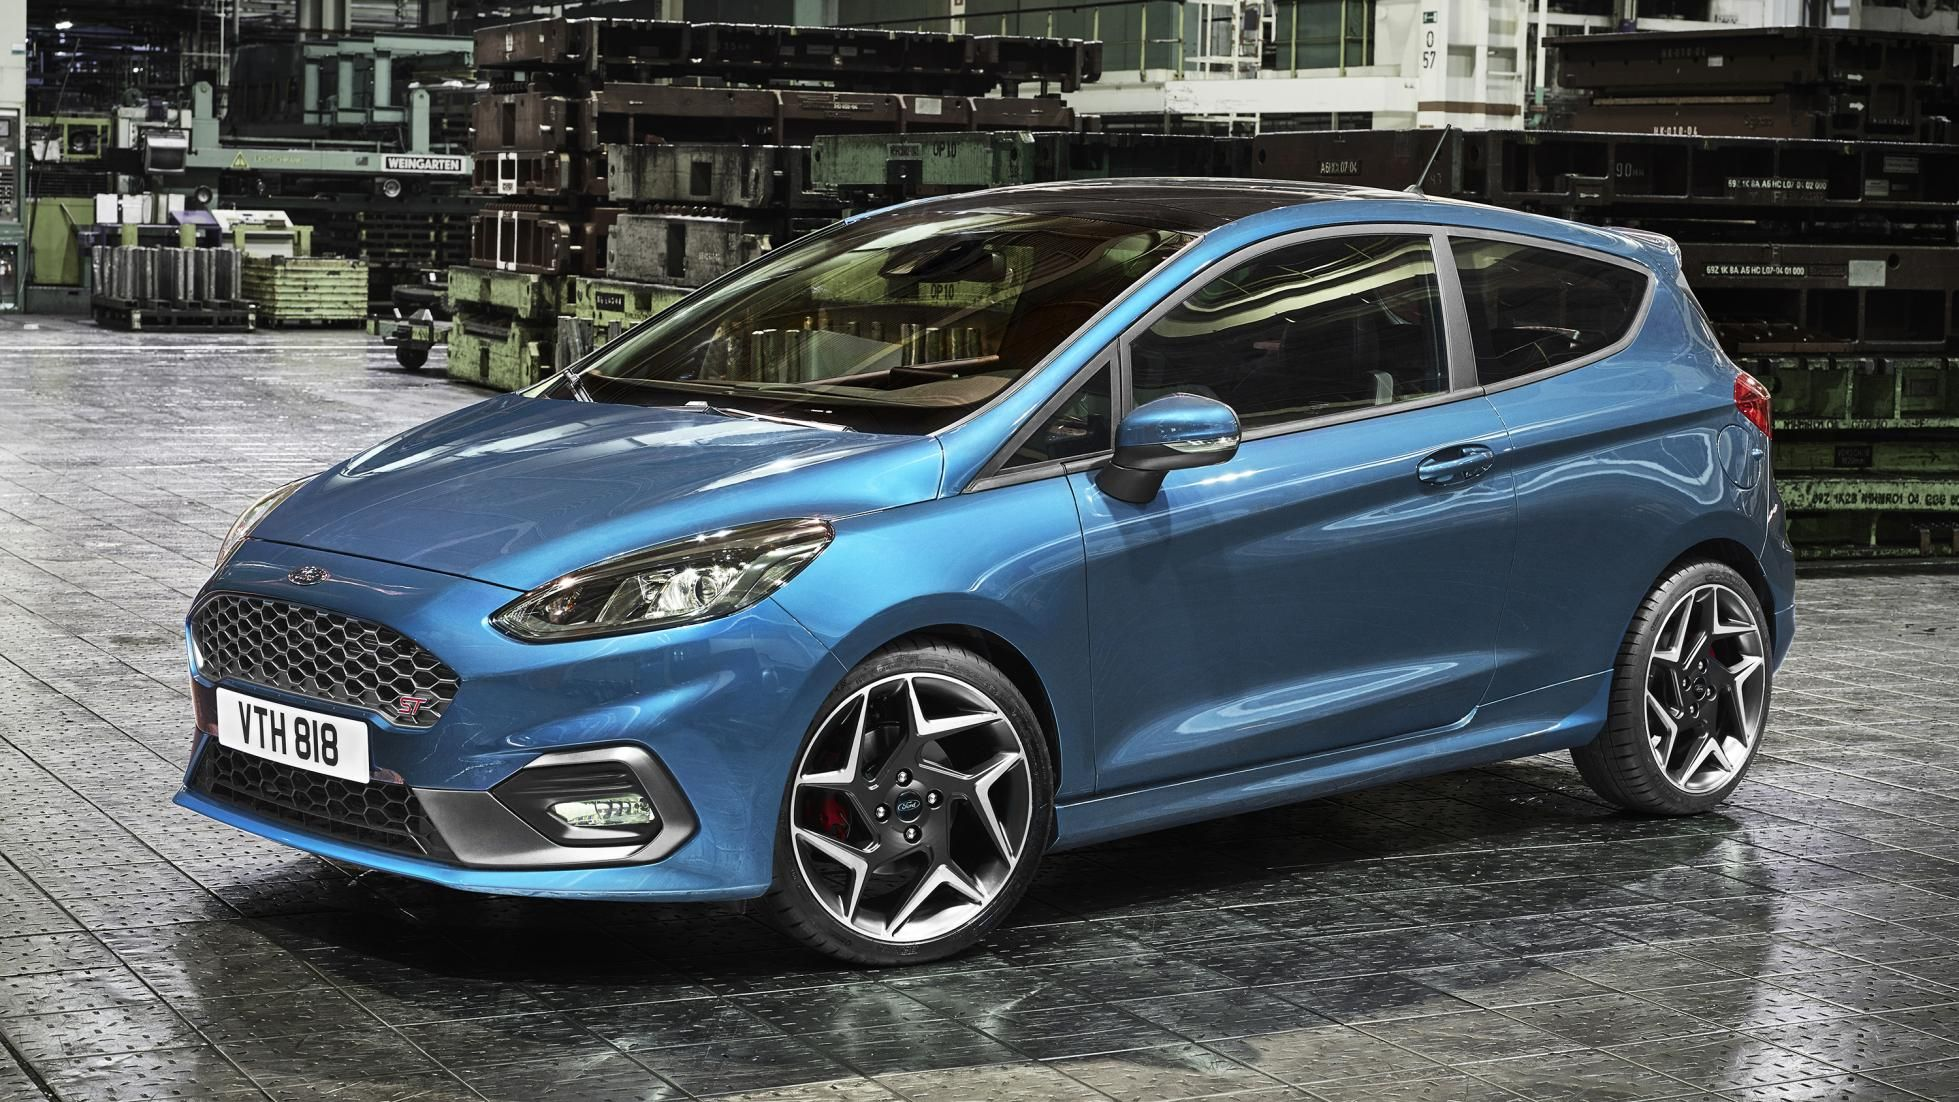 2012 ford focus rs rendering 1 227331 jpg 1600 1200 ford focus pinterest ford focus focus rs and ford